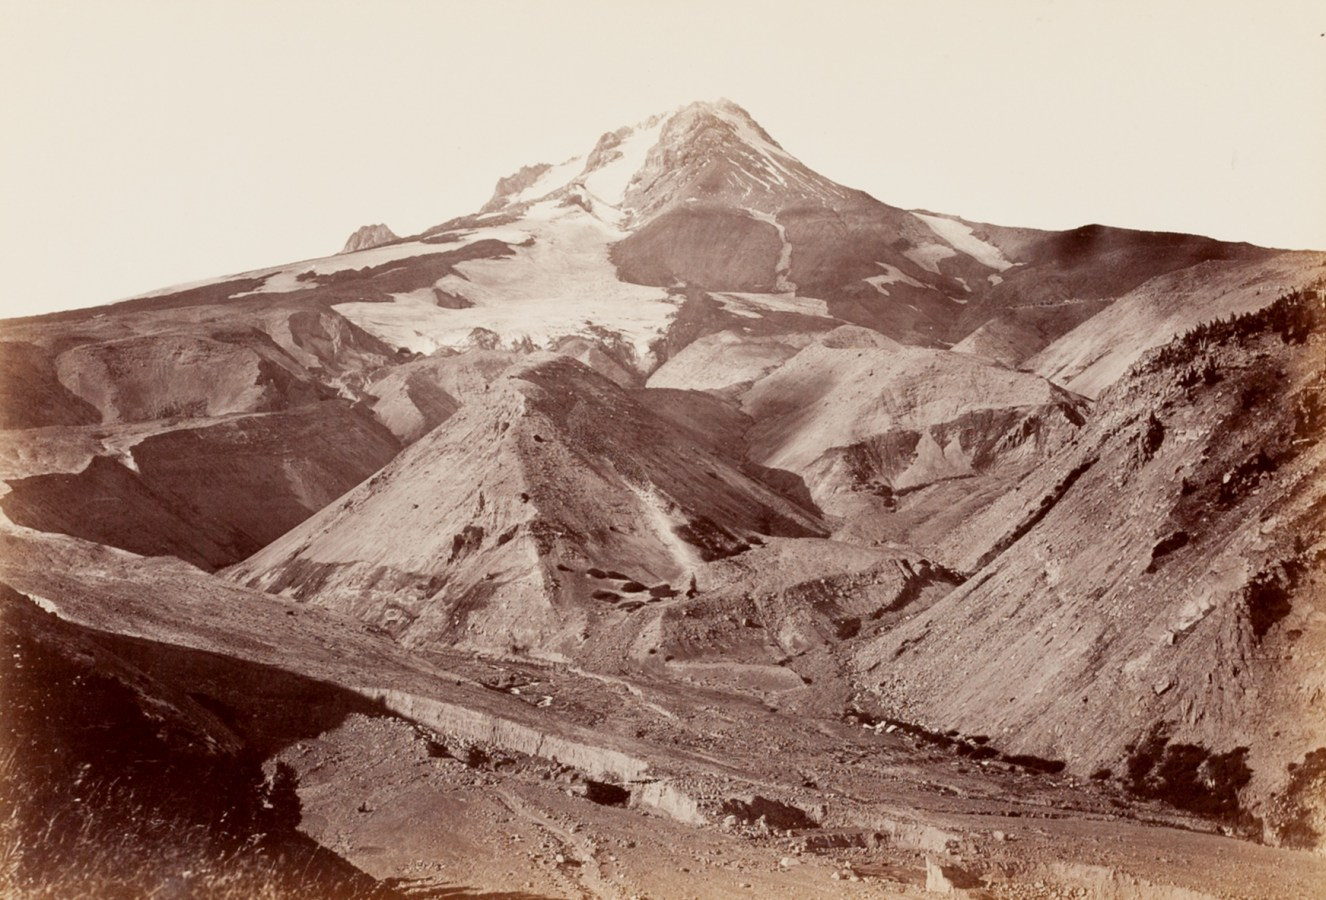 19th century photograph of a snow-covered mountain top